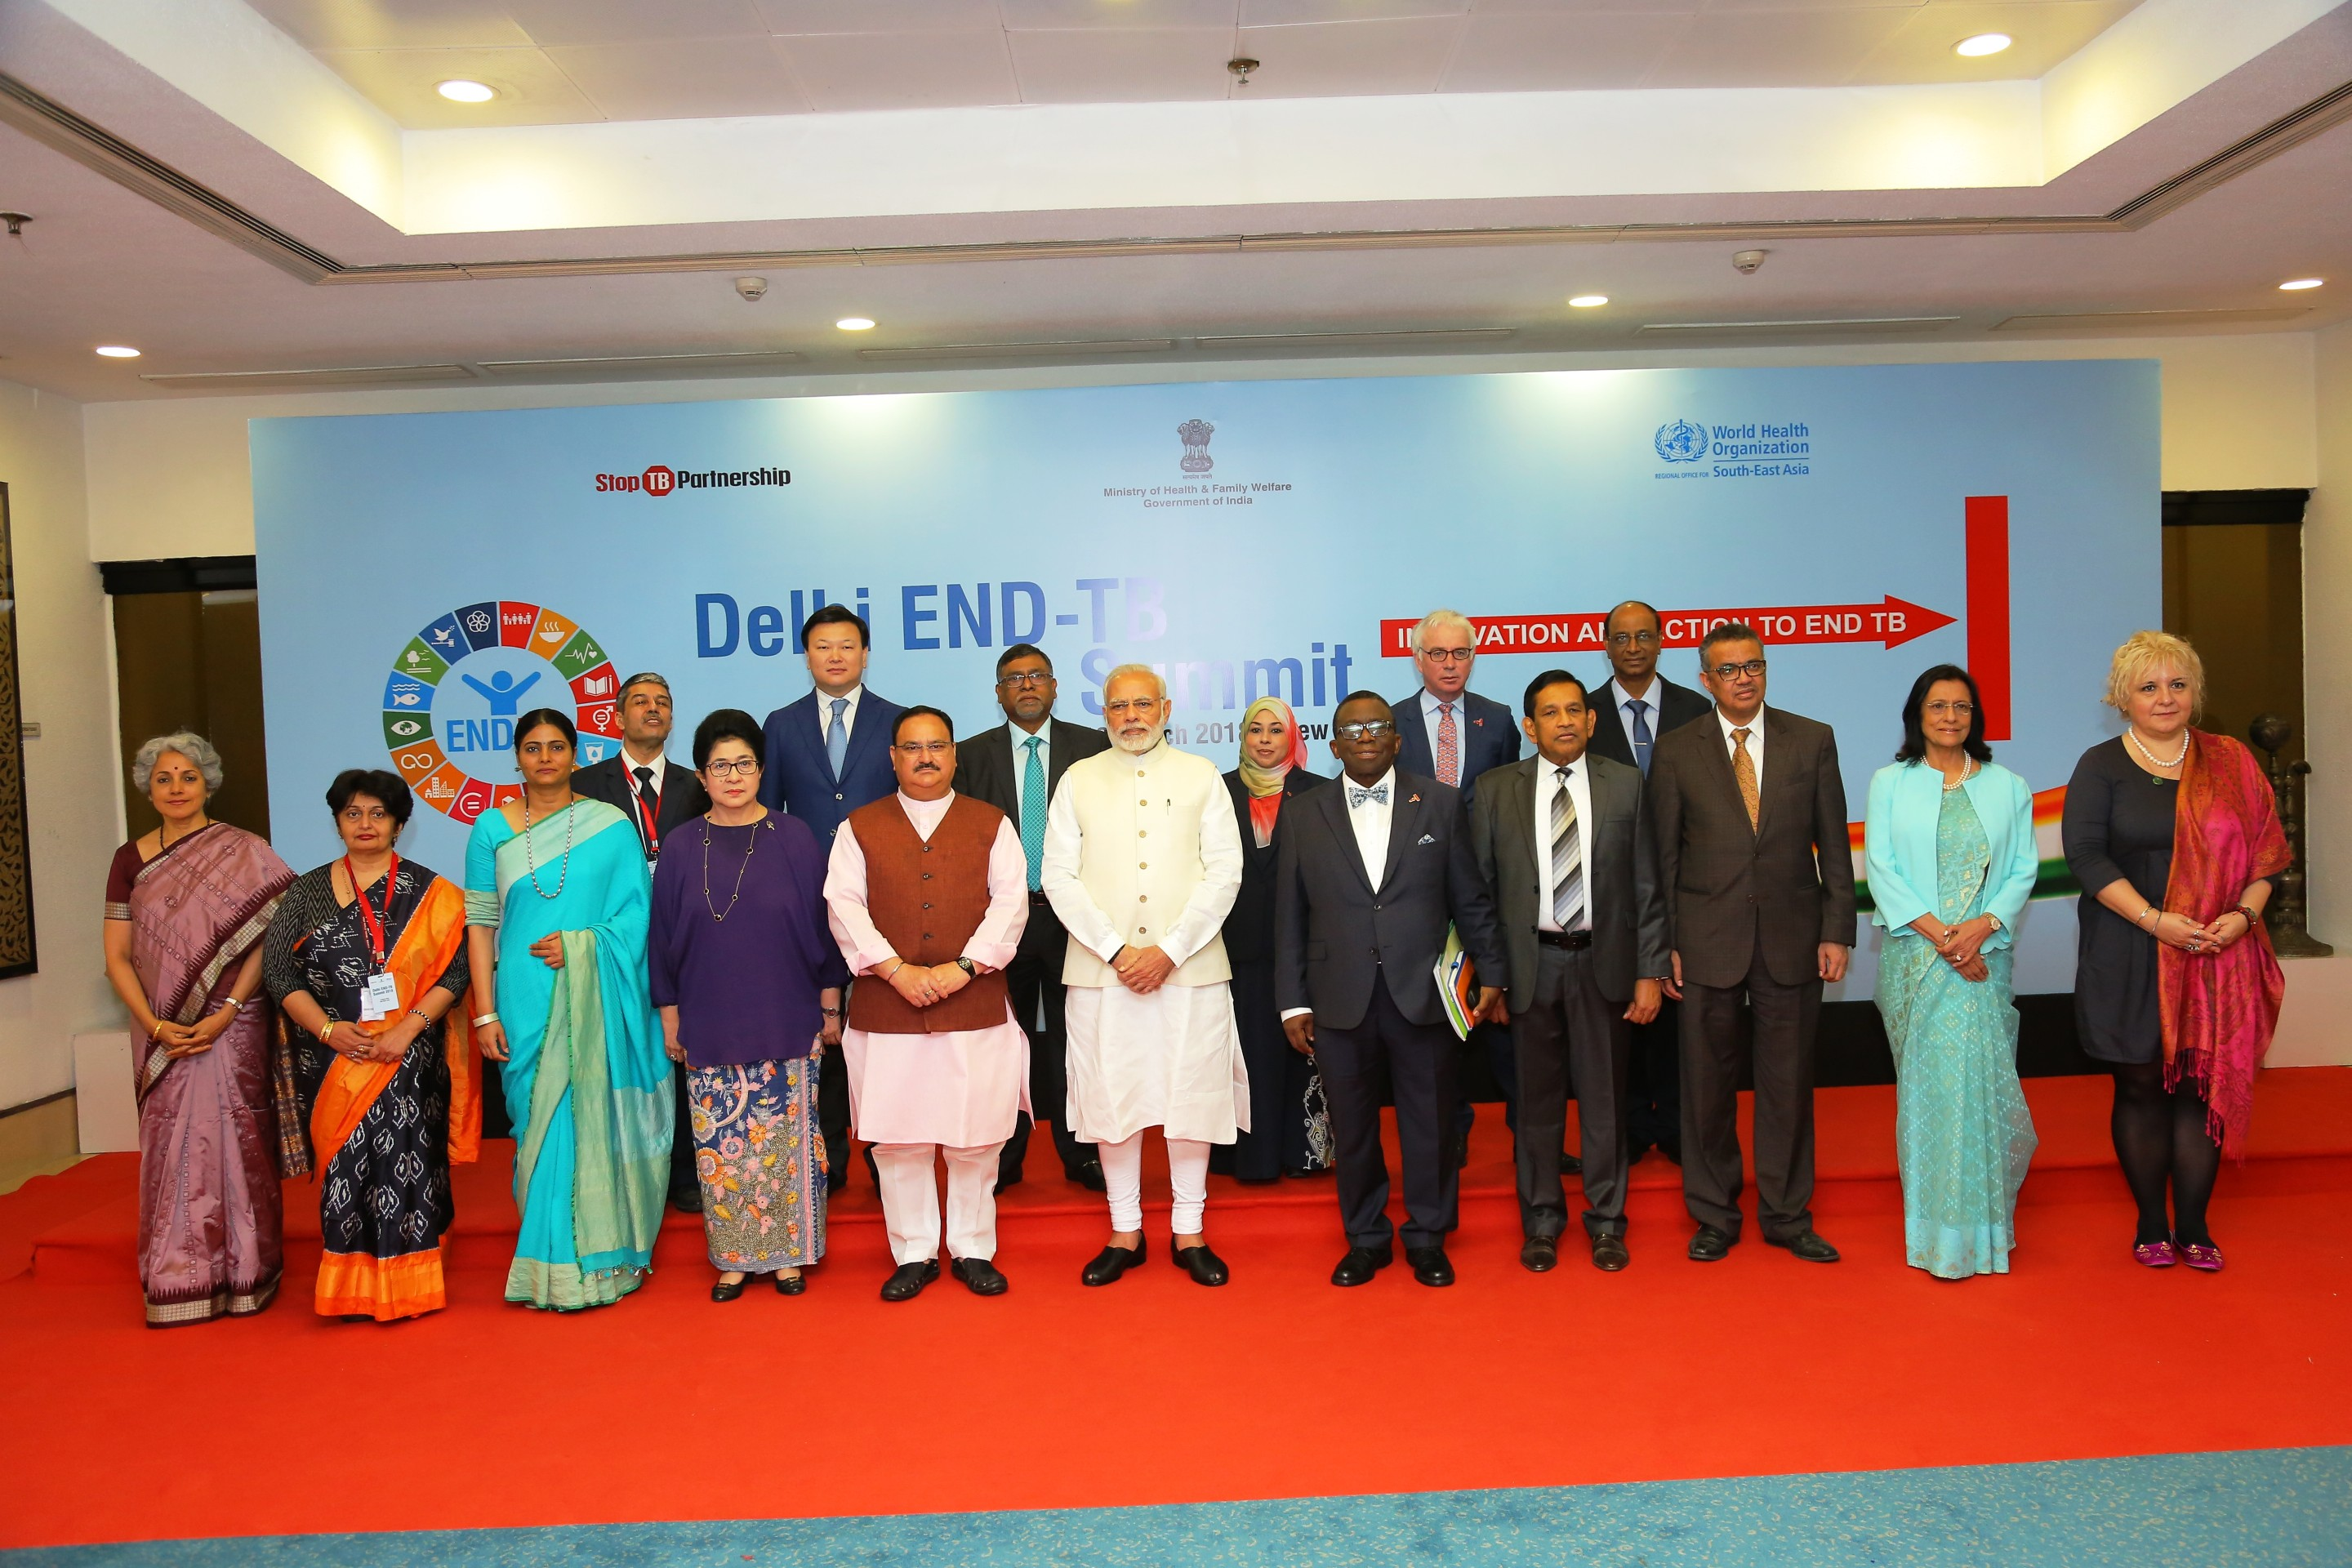 Prime Minister along with Health Minister of Brazil, Nigeria, Khazakistan, Sri Lanka, Tanzania, Zimbabwe, Regional Director WHO (SEAR) Executive Director (Stop TB)